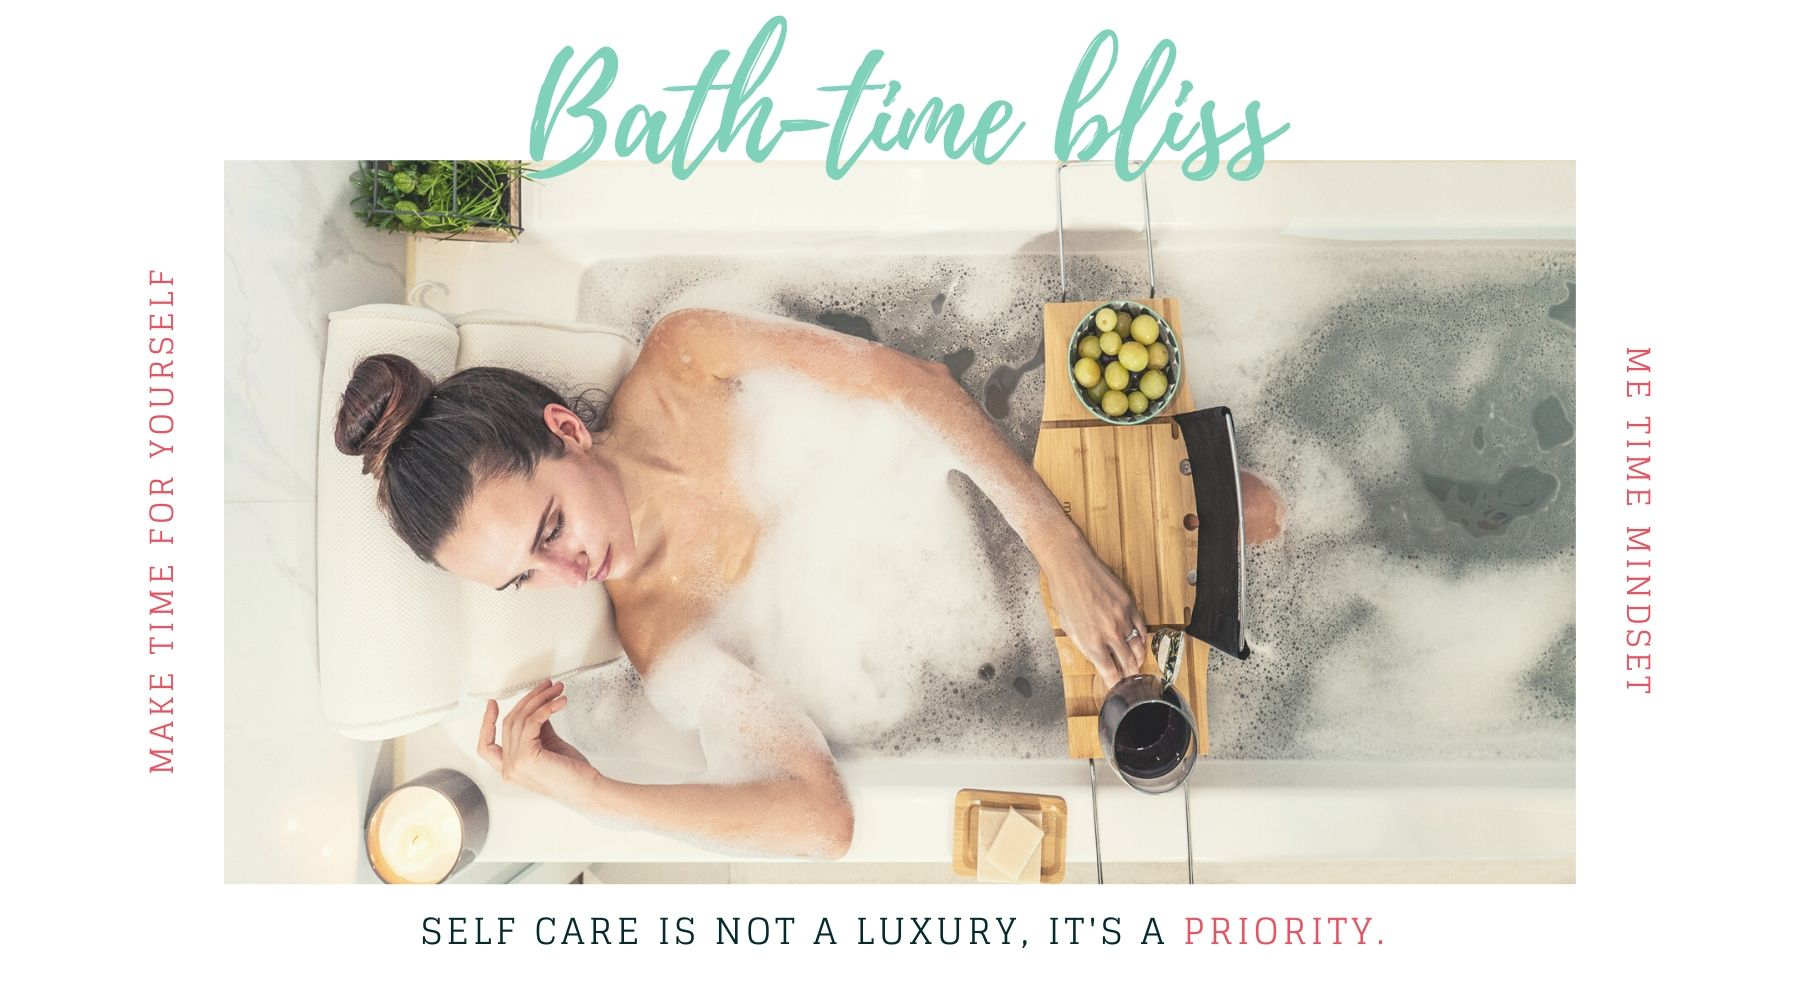 Luxury Bath Tub Products in a Bubble Bath - Bath Gifts for Women